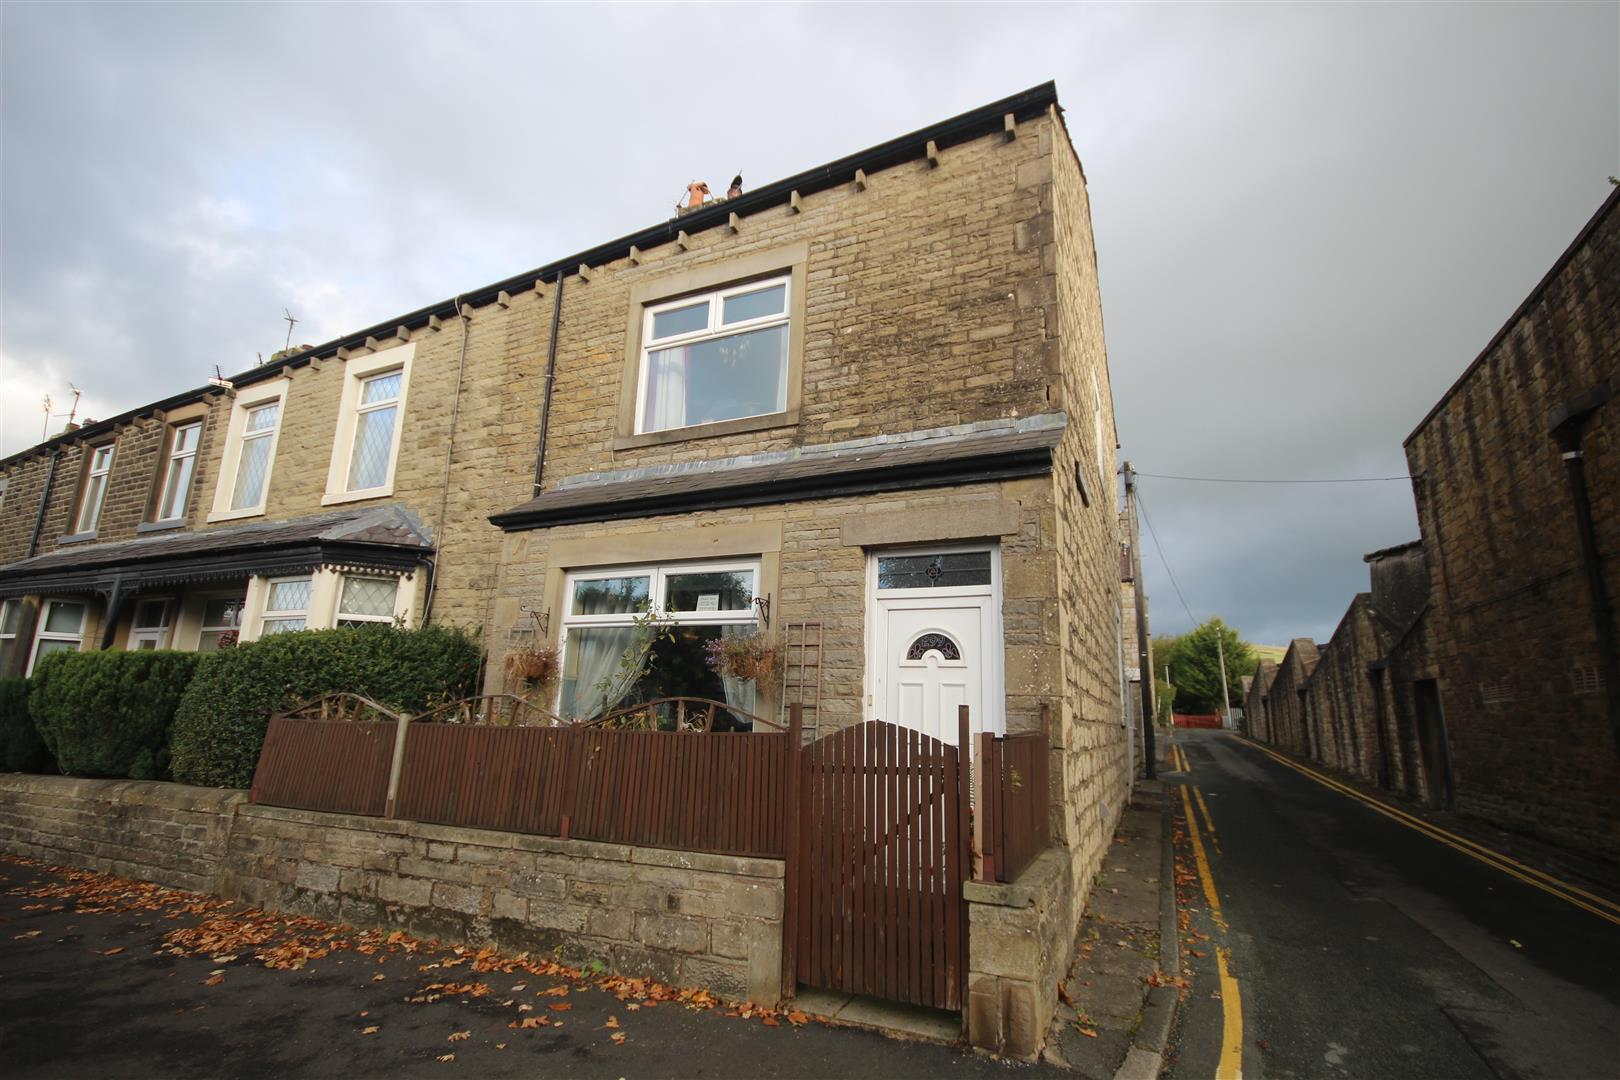 3 bedroom end terrace house For Sale in Sough, Barnoldswick - Property photograph